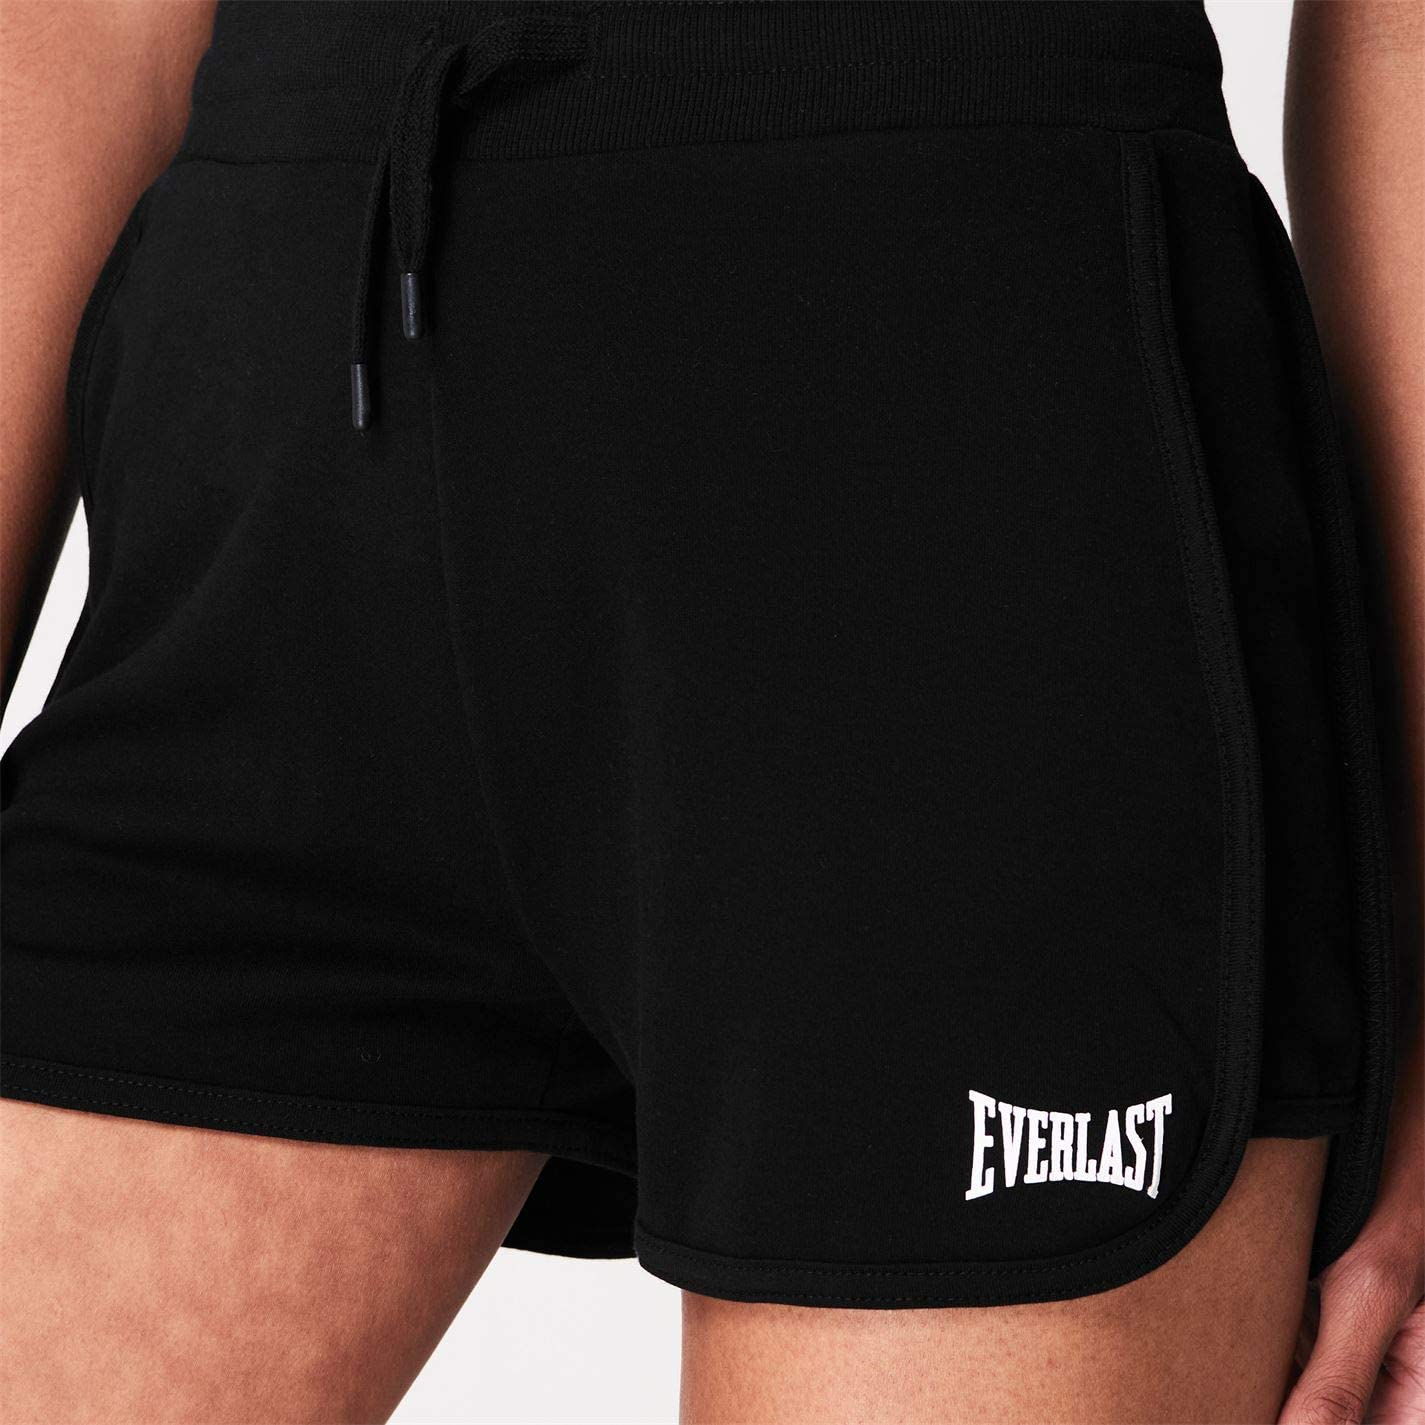 Everlast Donna Il Shorts Pantaloncini in Pile Sport